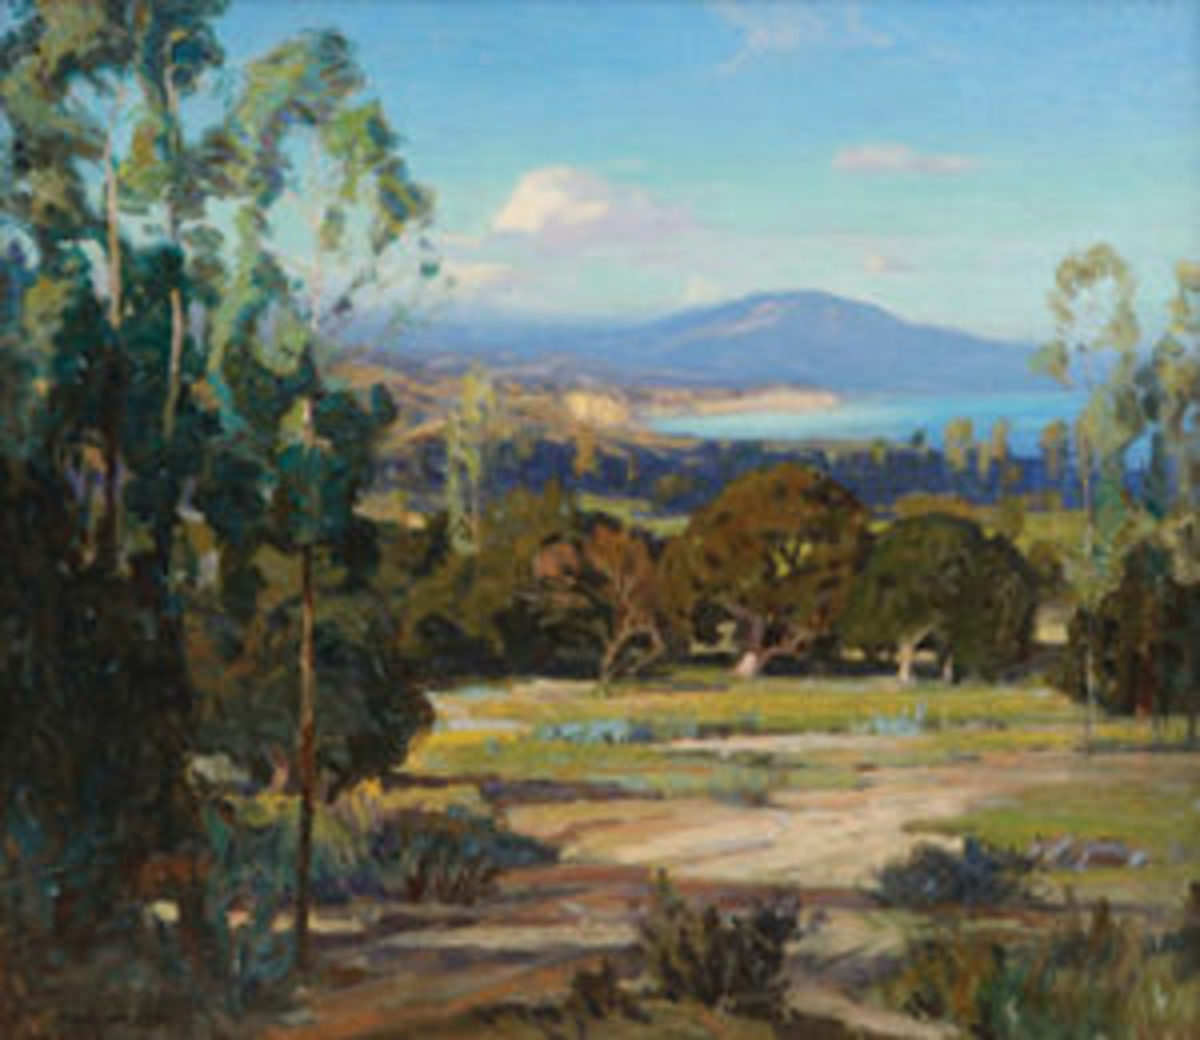 """Oil on canvas painting by Carl Oscar Borg (Swedish/American, 1879-1947), titled Montecito looking towards the Rincon, signed lower left, 29"""" x 33-1/2""""; estimate: $25,000-$35,000."""